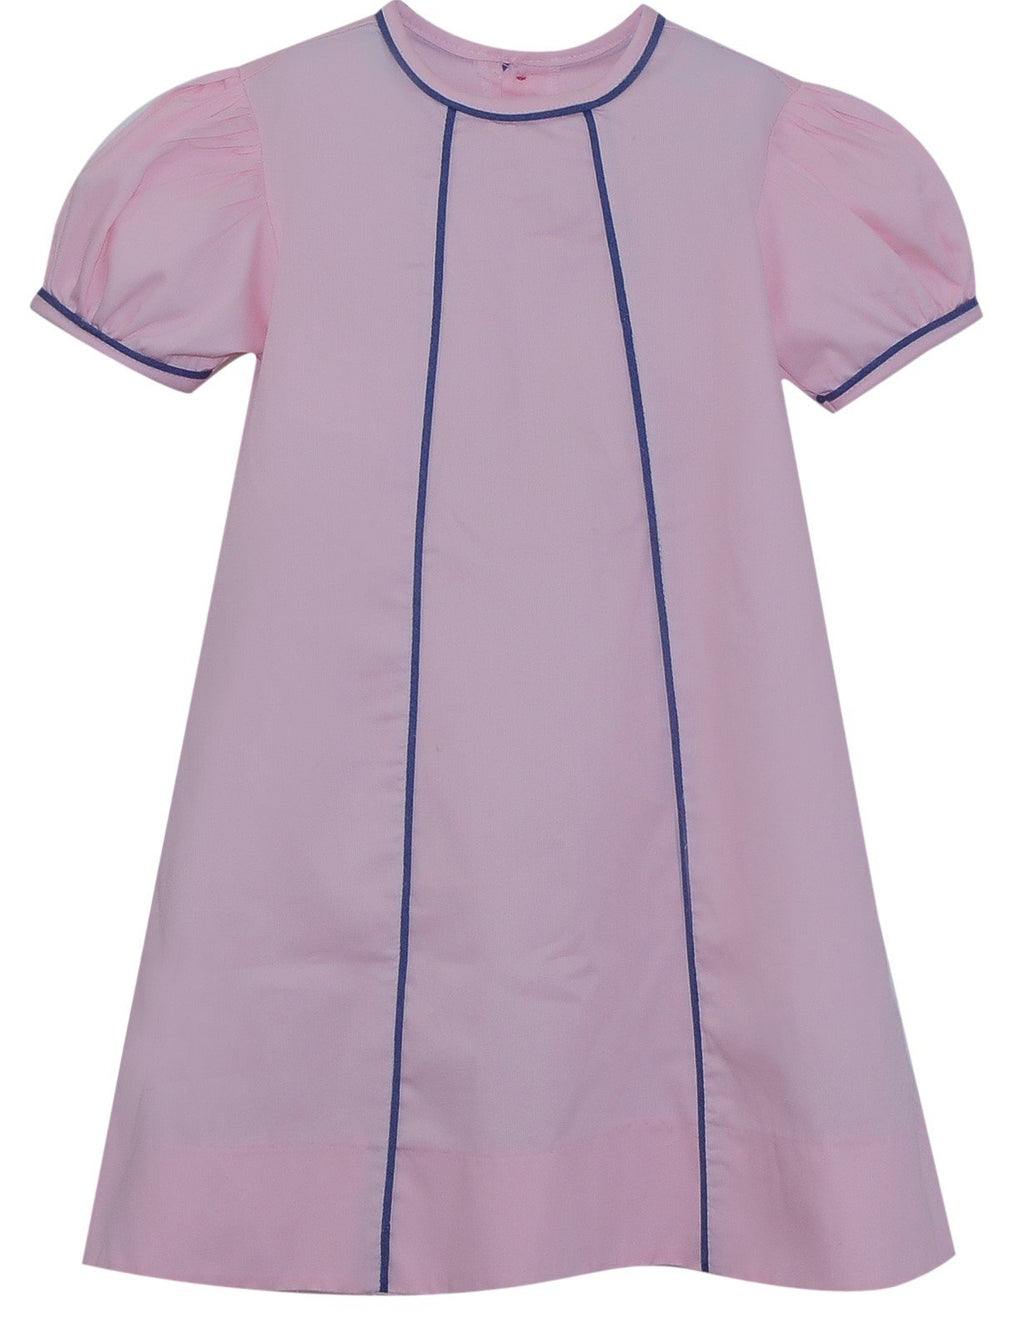 Lullaby Set Anytime Pink A-Line Dress